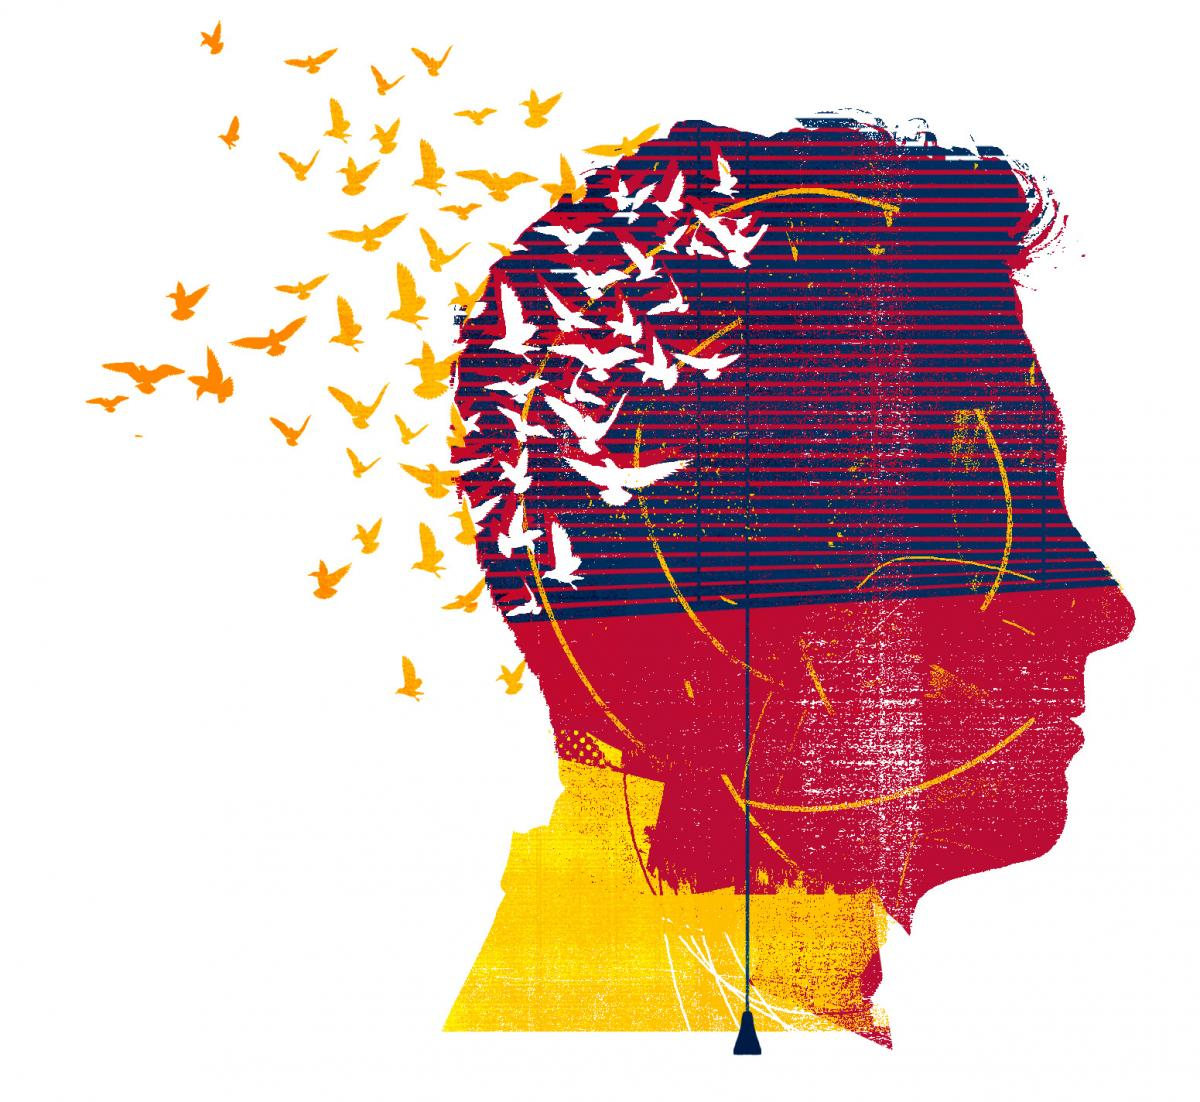 [concept illustration of head with birds]